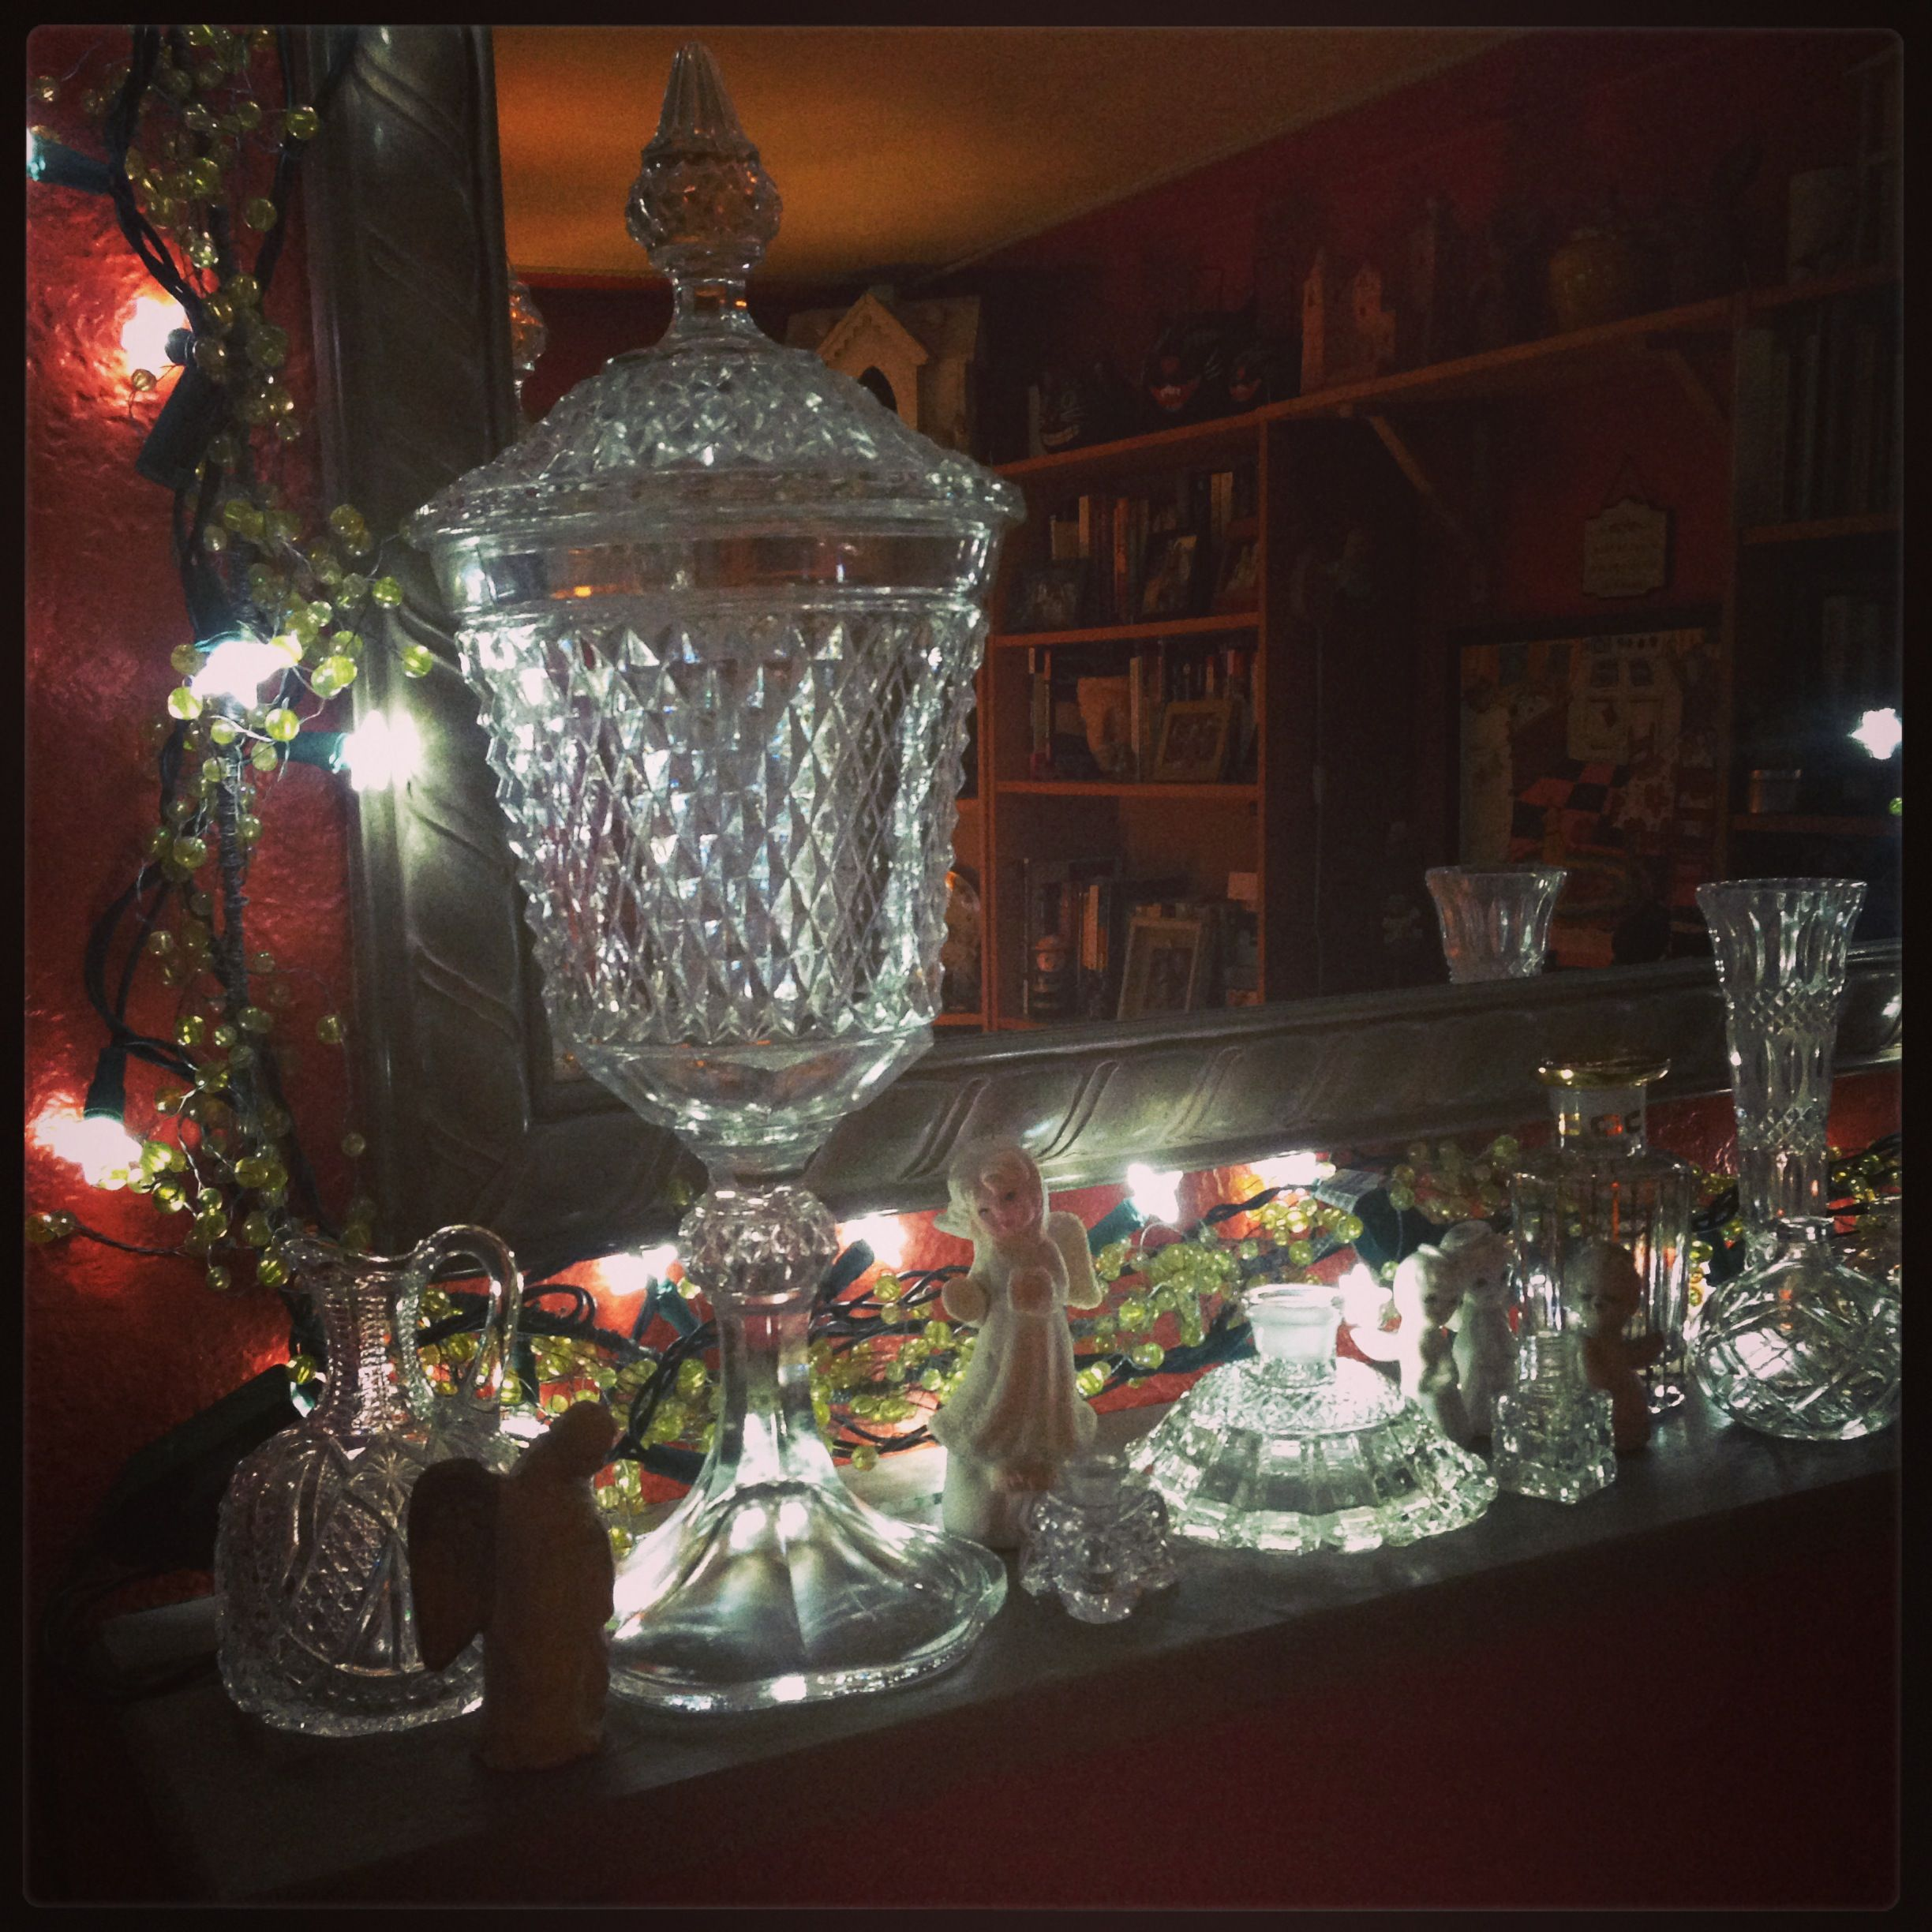 Crystal collection, shining for Christmas on the mantel.